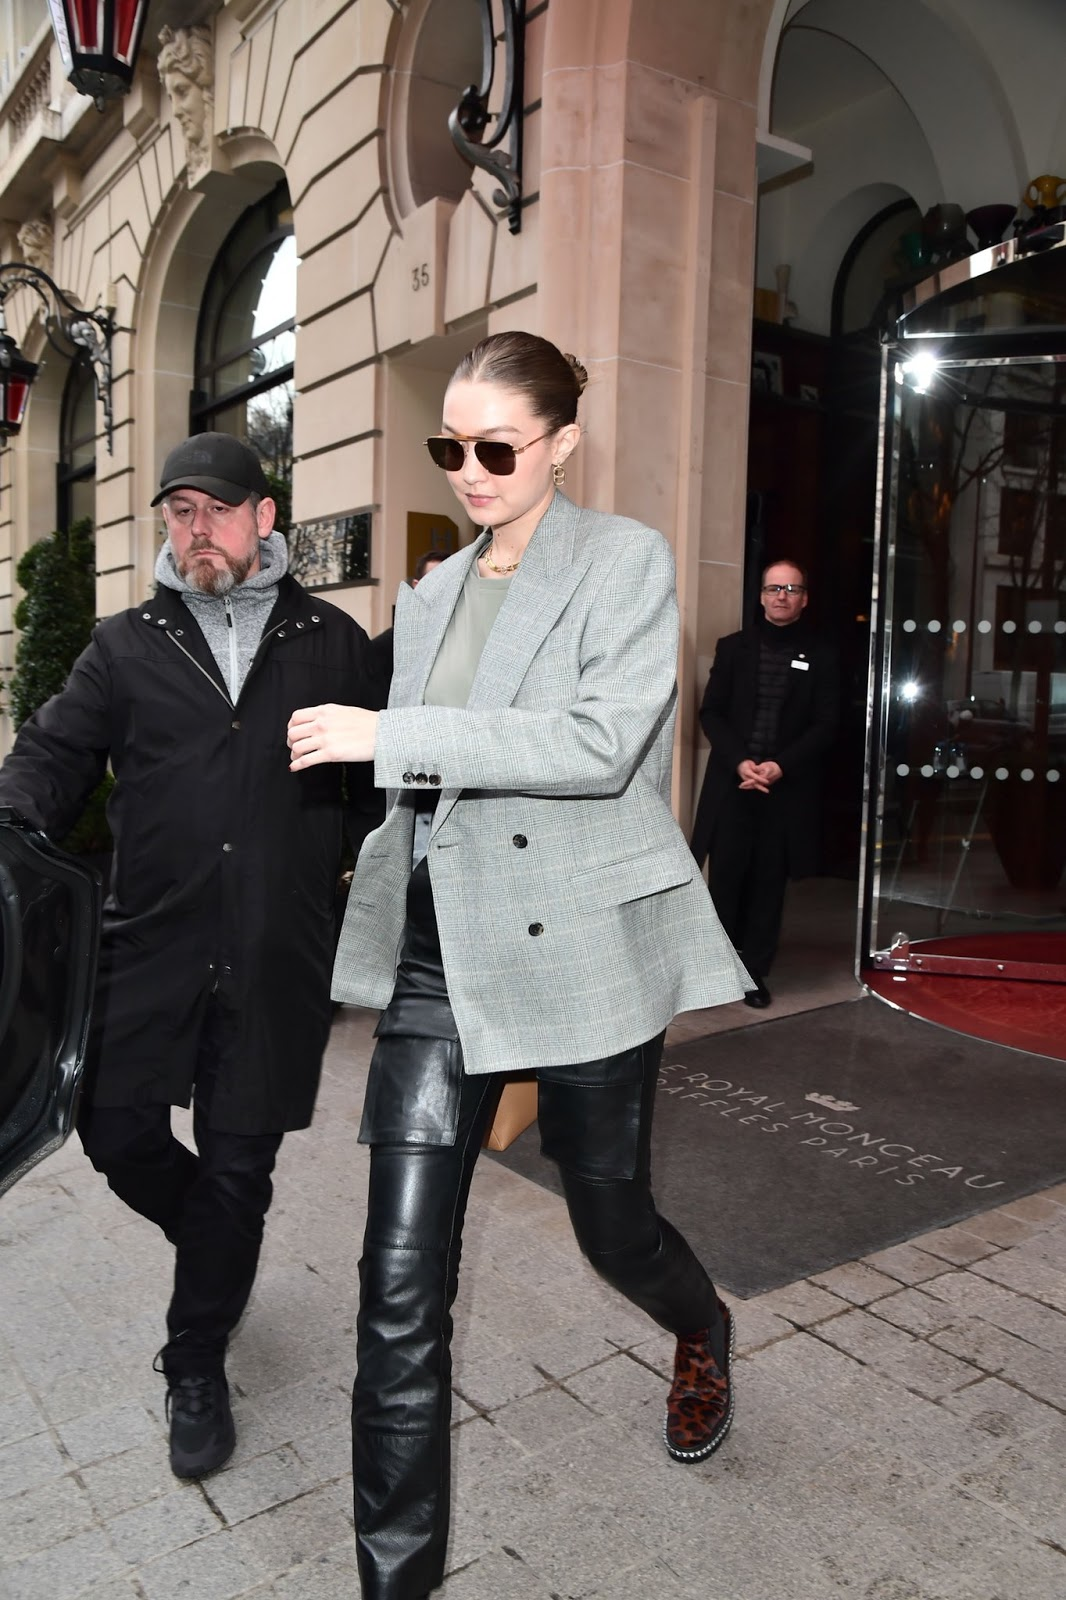 Gigi Hadid nails androgynous chic out and about in Paris